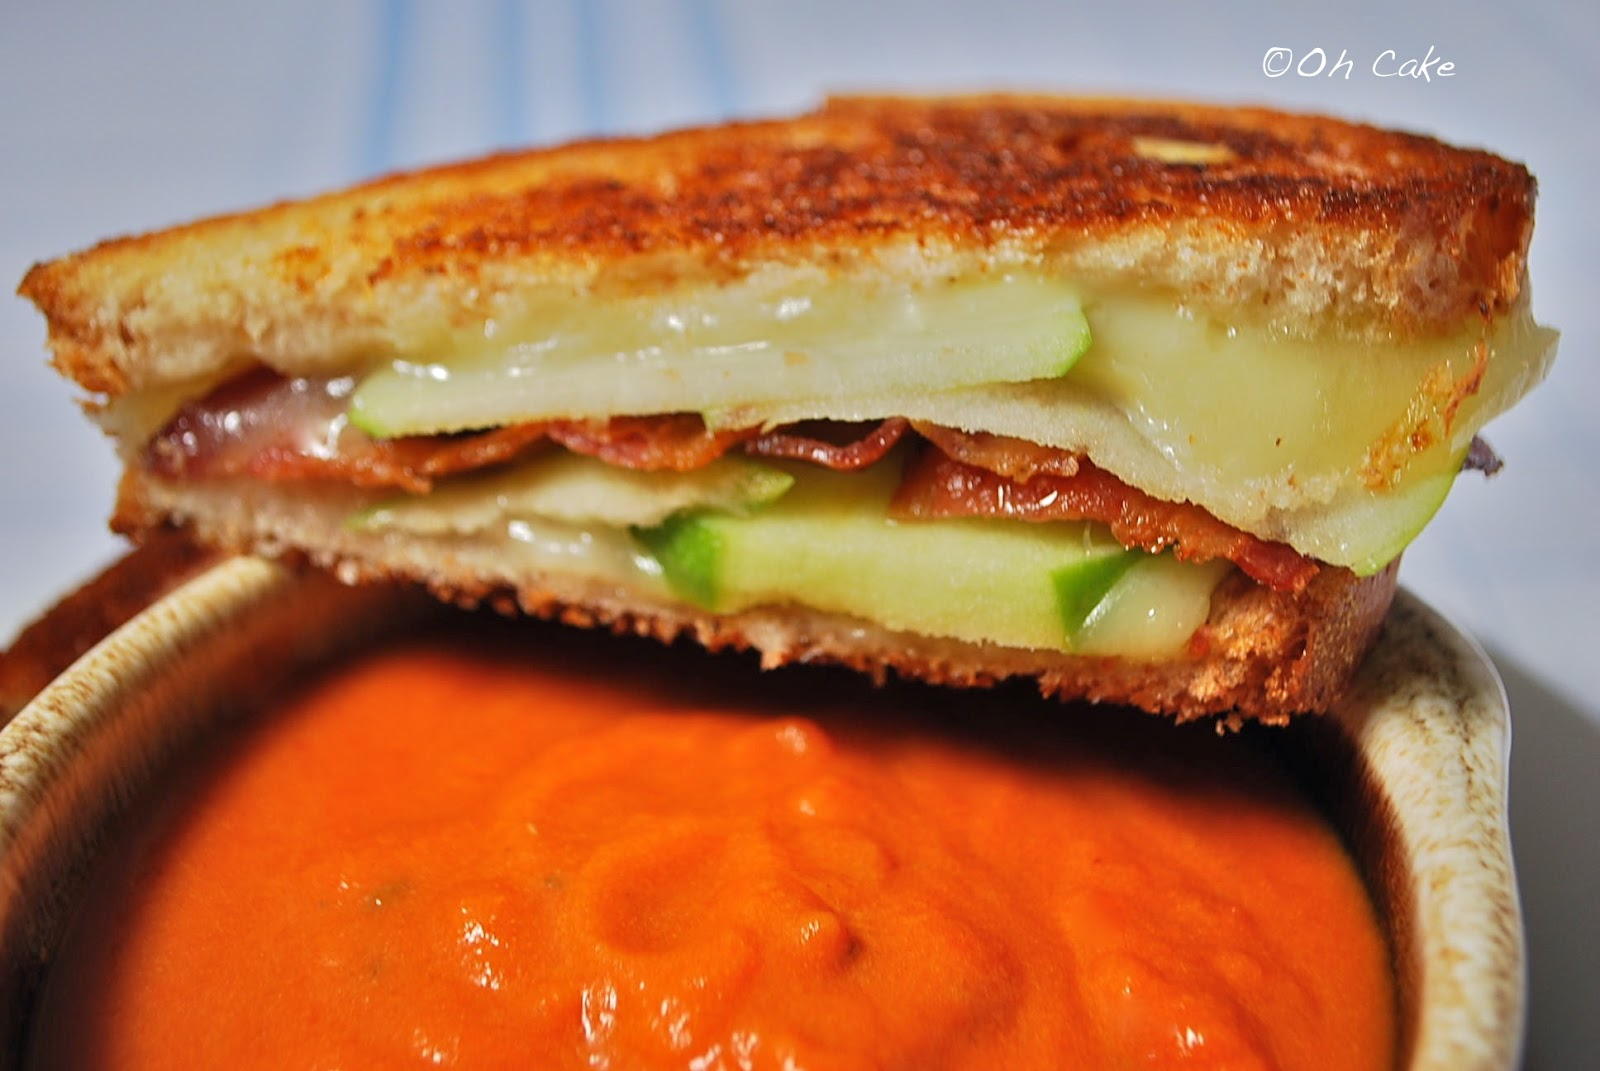 ... Cake: Roasted Pepper & Tomato Soup with Bacon & Apple Grilled Cheese